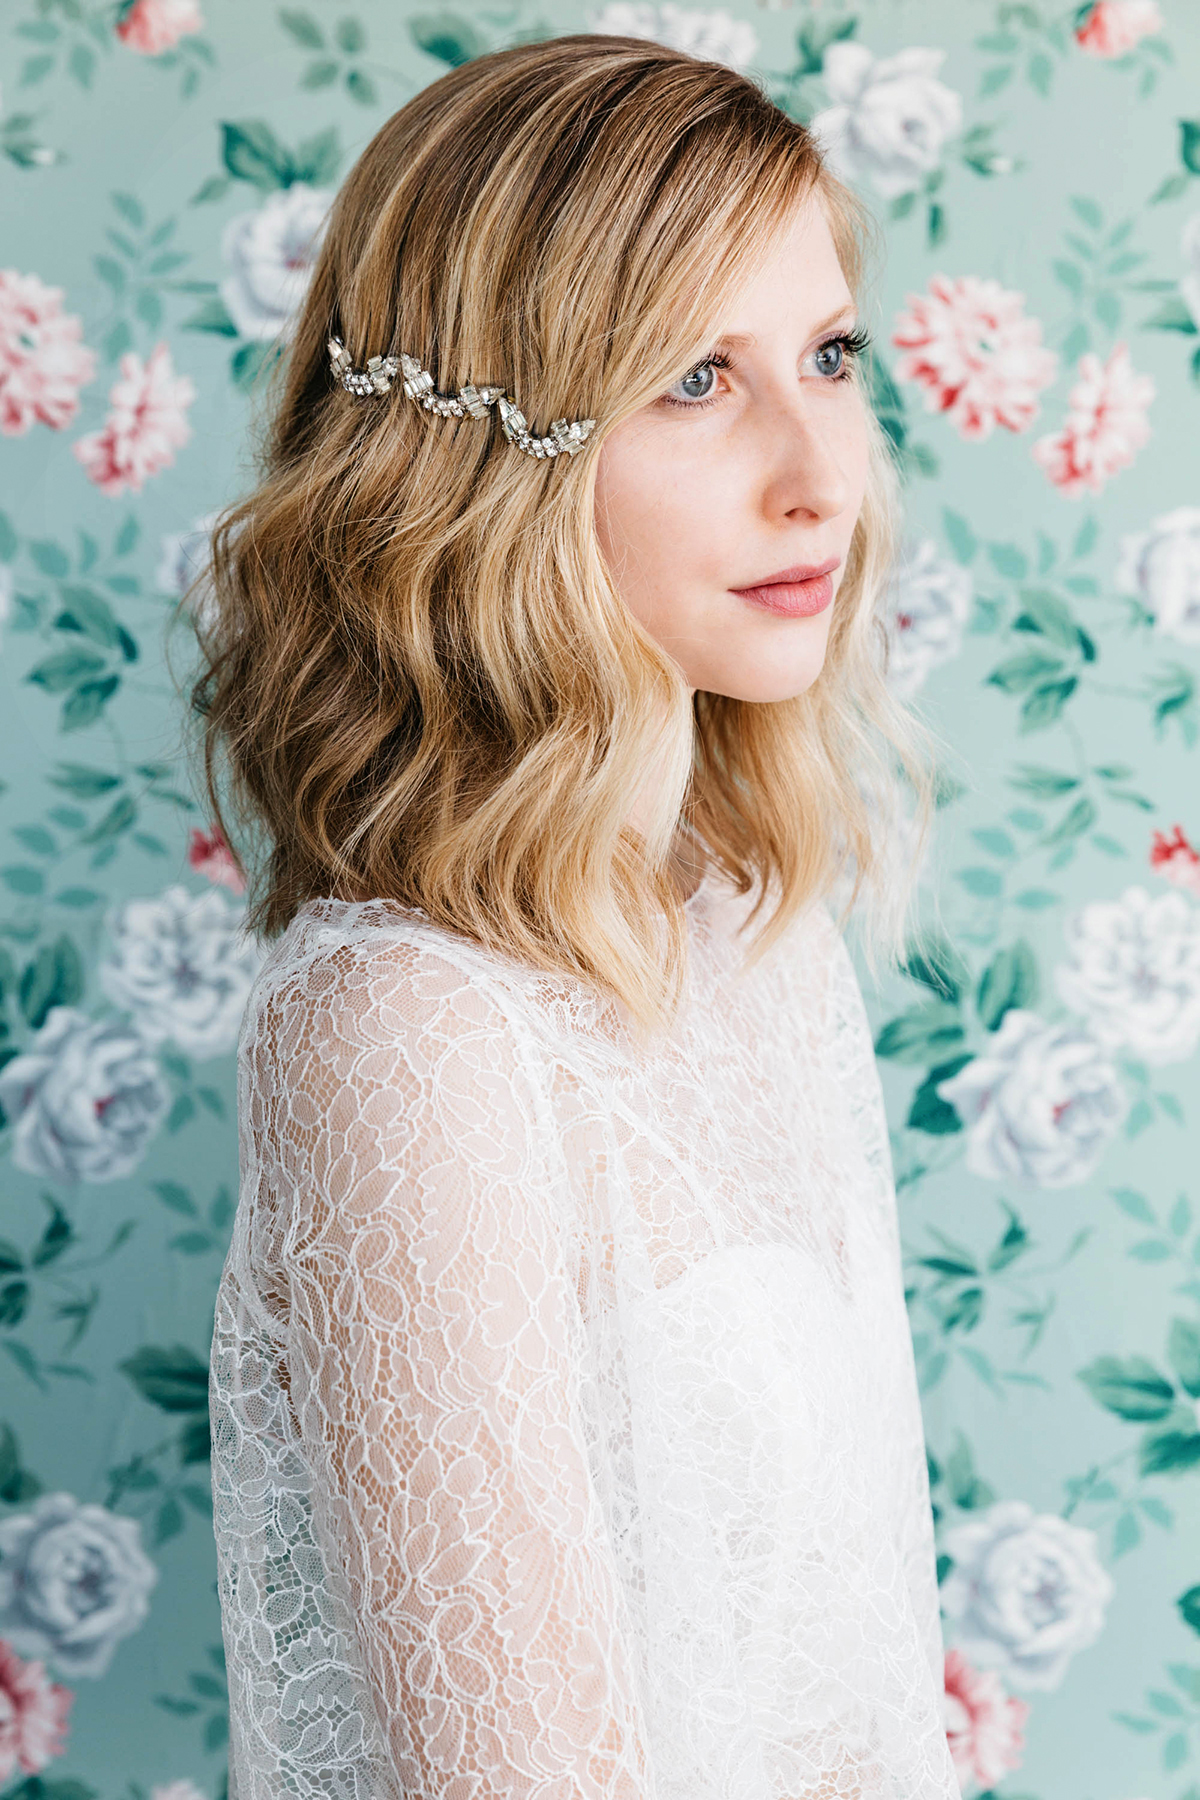 DIY-Hair-Accessories-With-Vintage-Jewelry-Vintage-Backdrop-Wedding-Photos-wallpaper-wp6002987